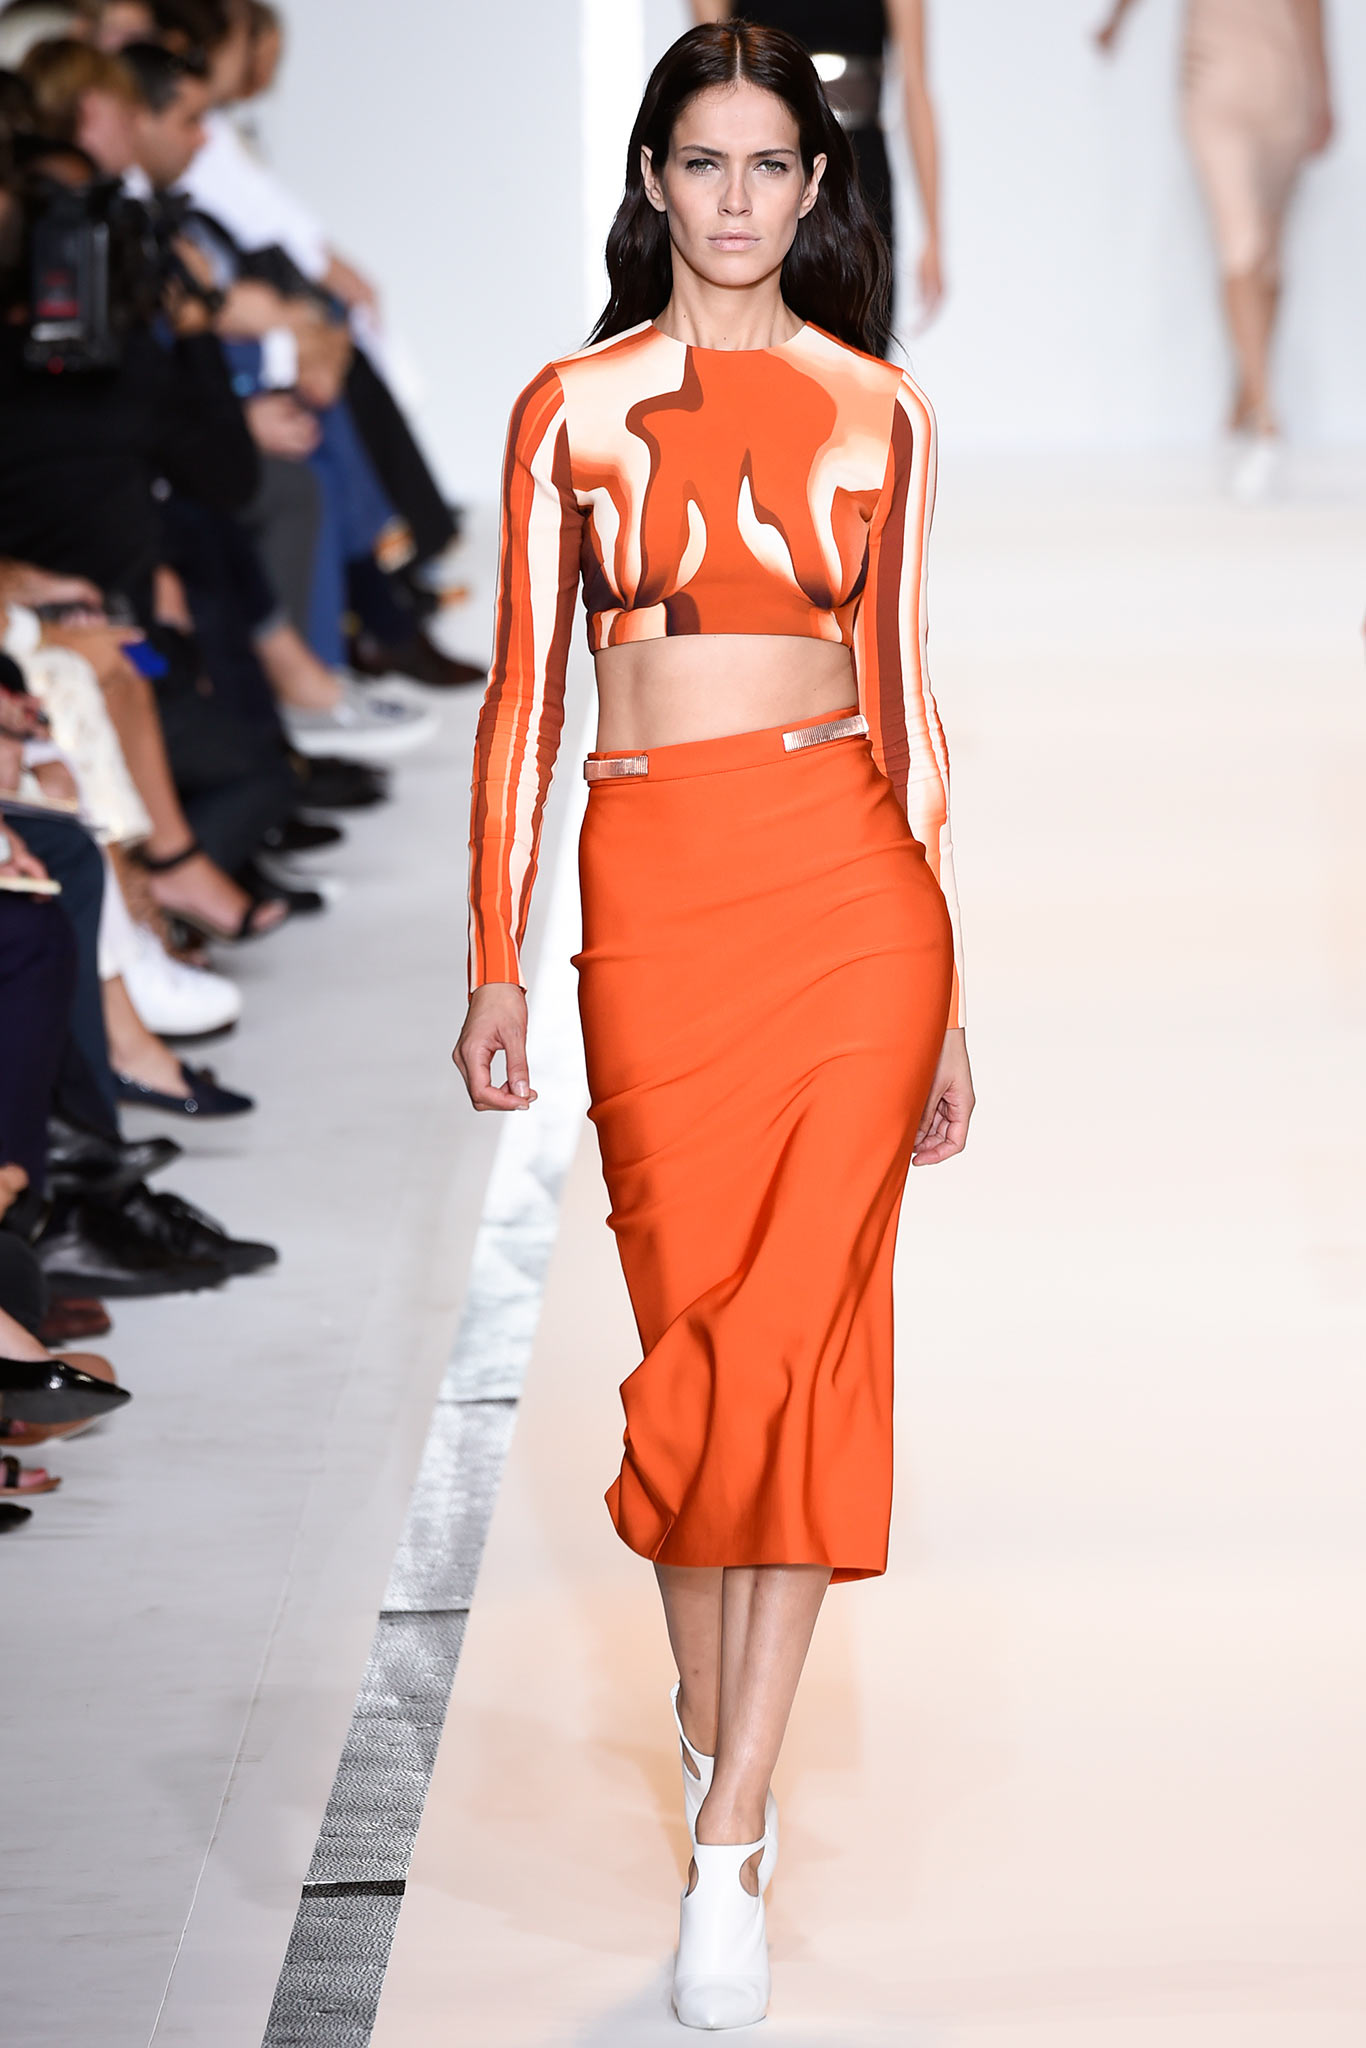 Mugler - Paris Fashion Week Spring-Summer 2015